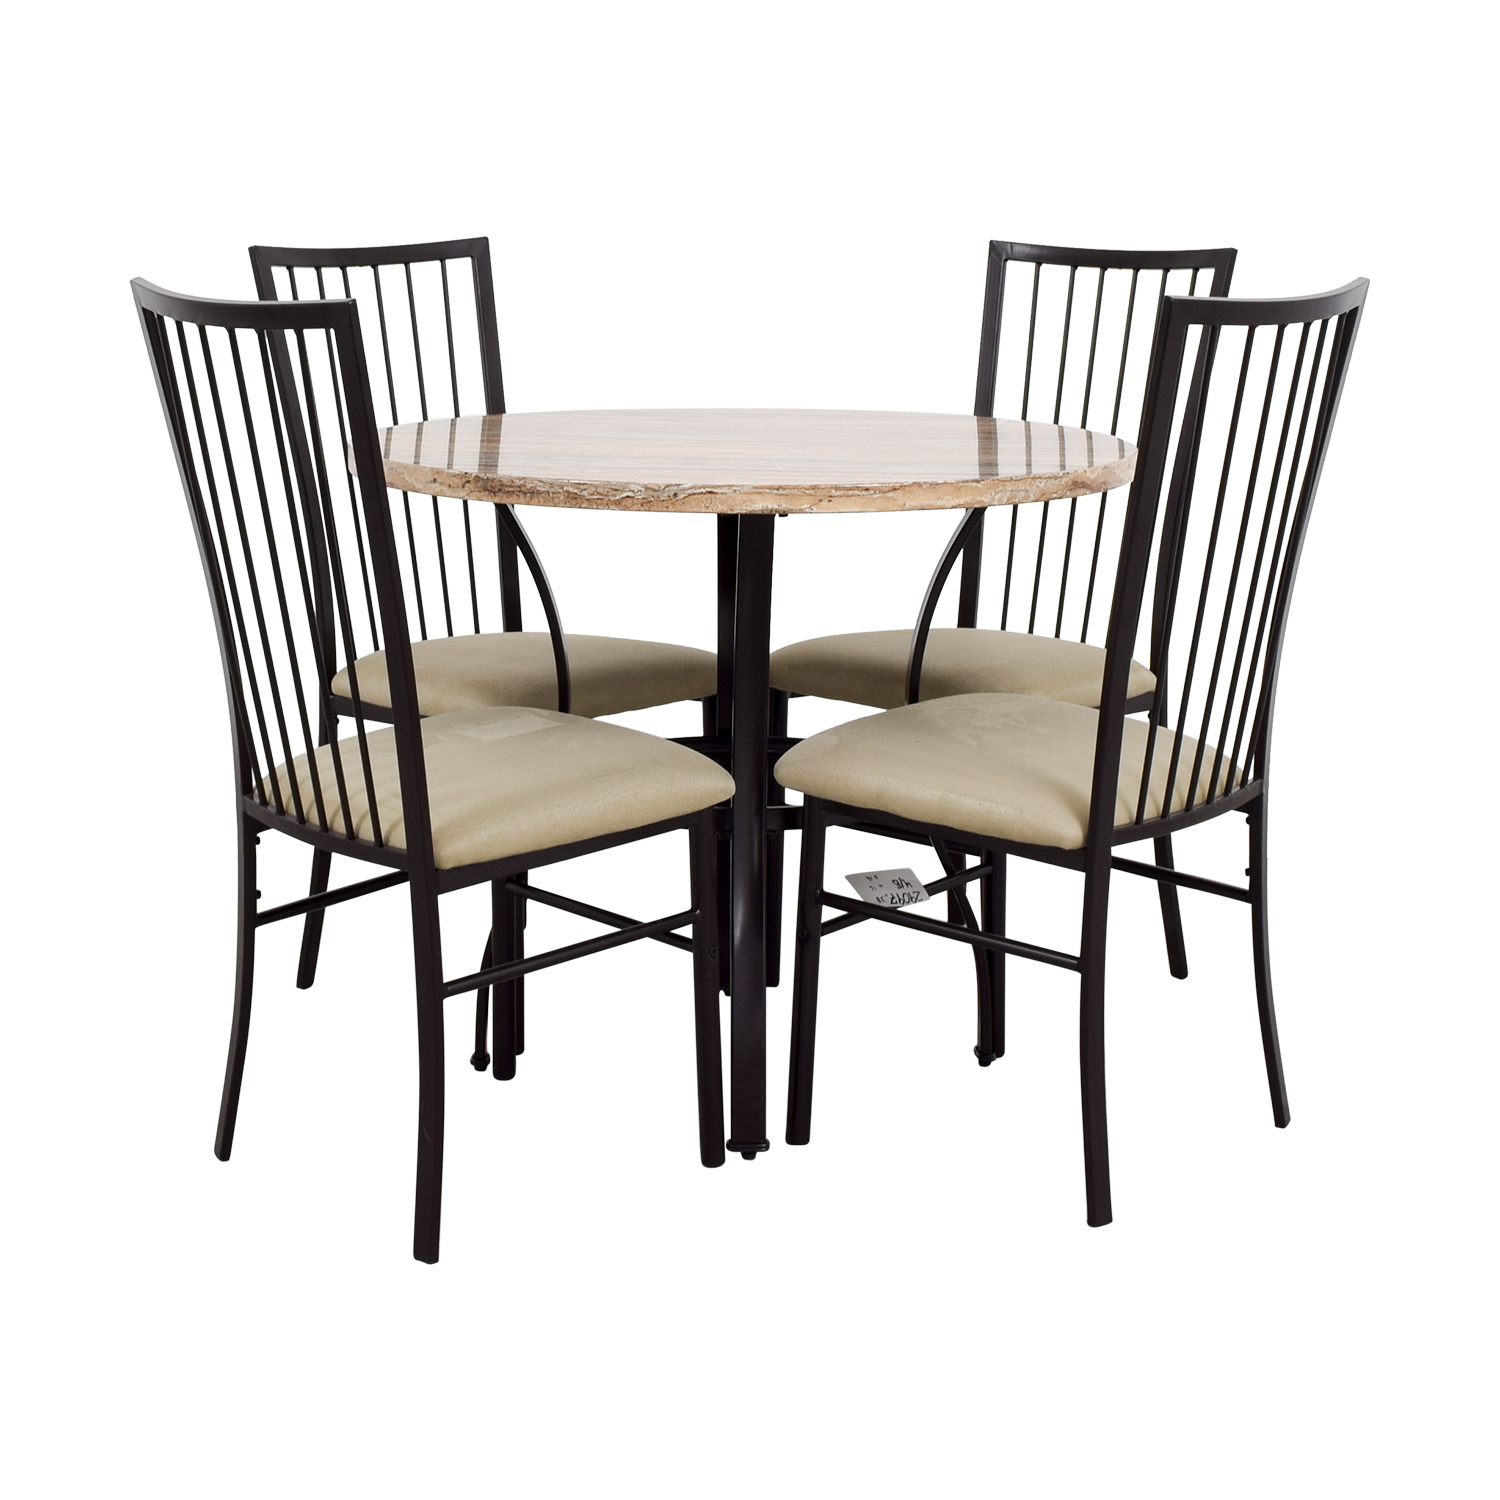 Dining Table And Chair Set Price